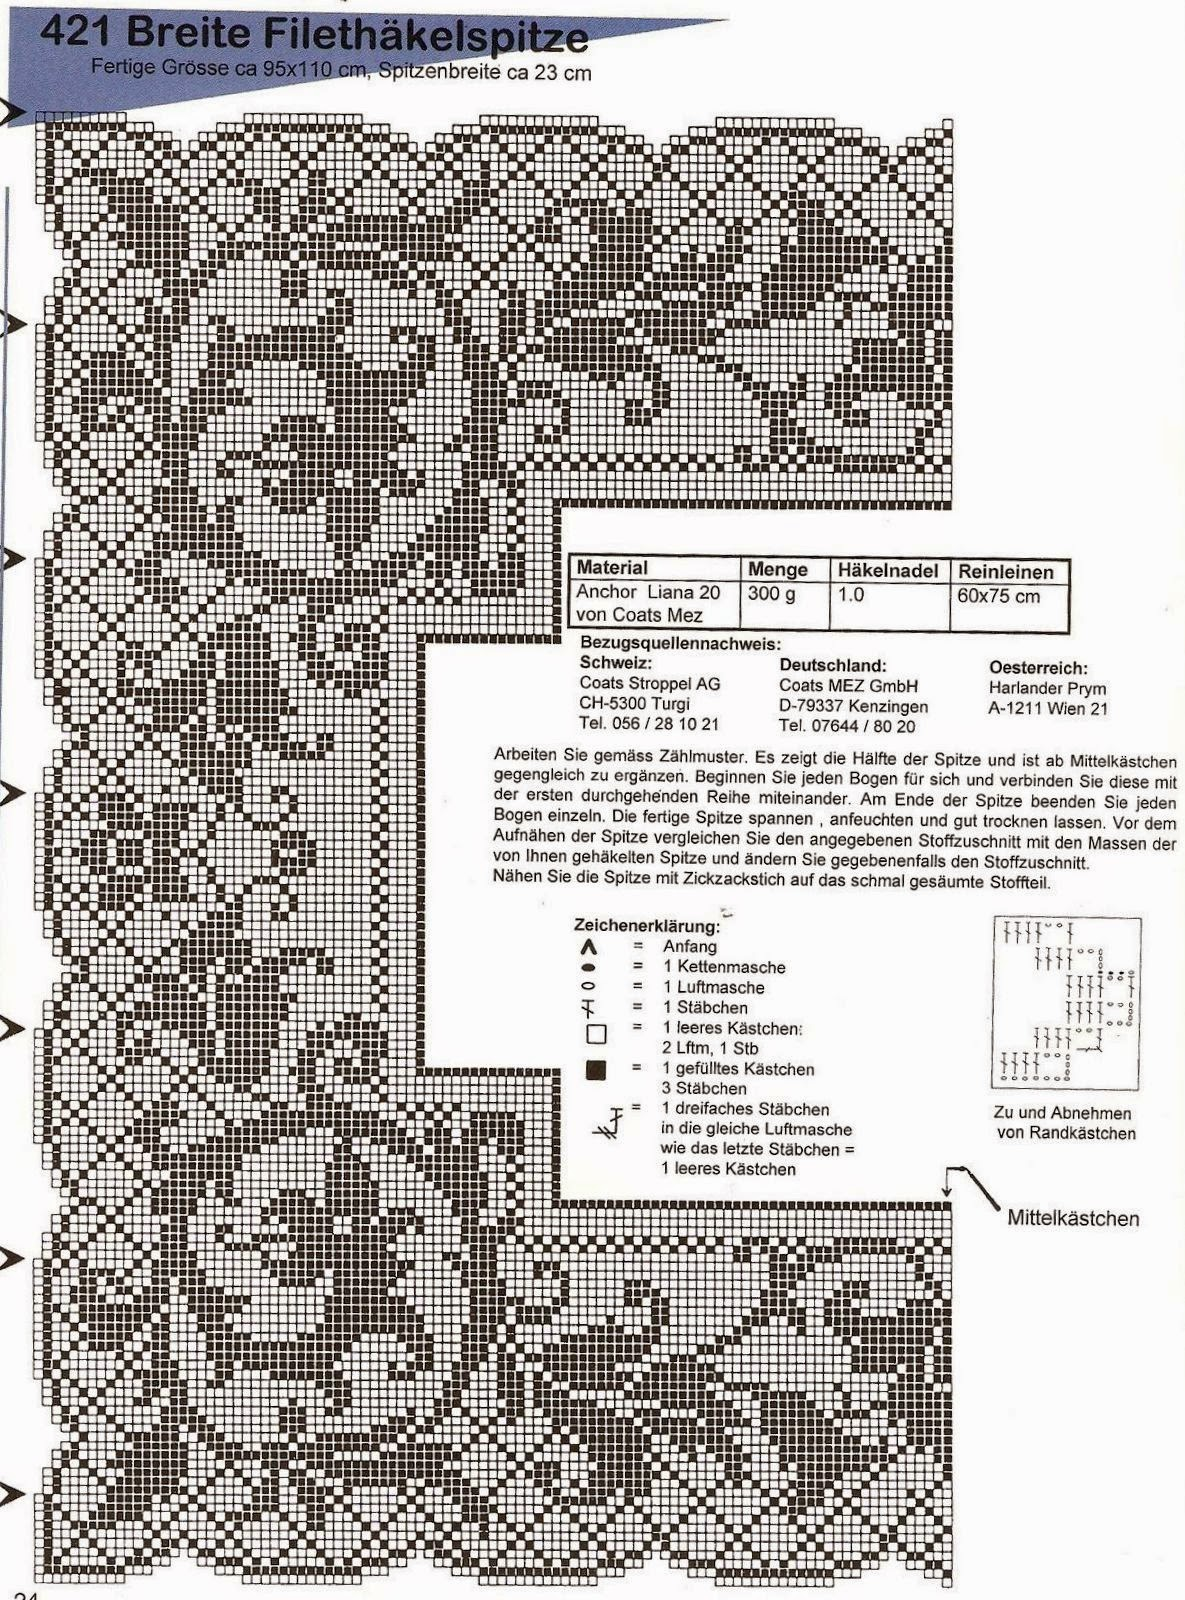 Crochet Patterns Etc : partitions crochet crochet border crochet filet crochet patterns etc ...